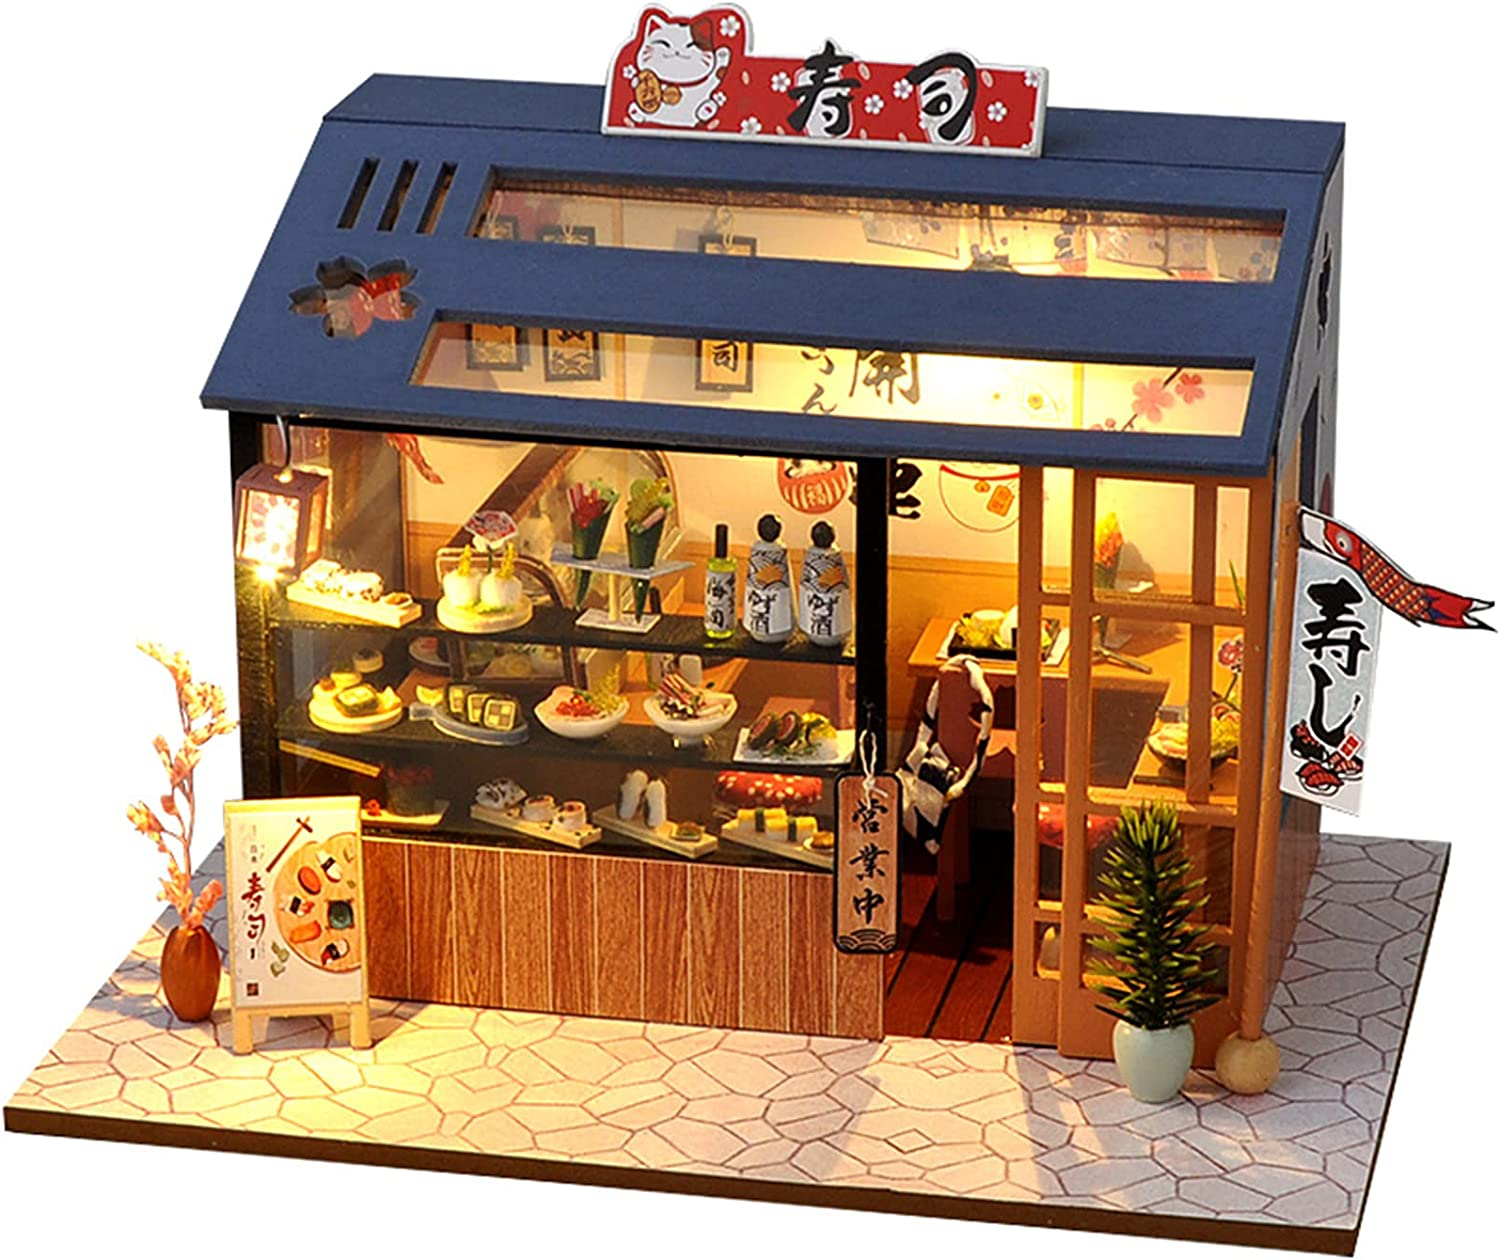 EIRMEON Dollhouse Miniature DIY House Kit with Furniture,DIY Wooden Dollhouse Kit,1:24 Scale Model House,Food and Play Shop for Kids Teens Birthday Gifts (Sushi Shop)